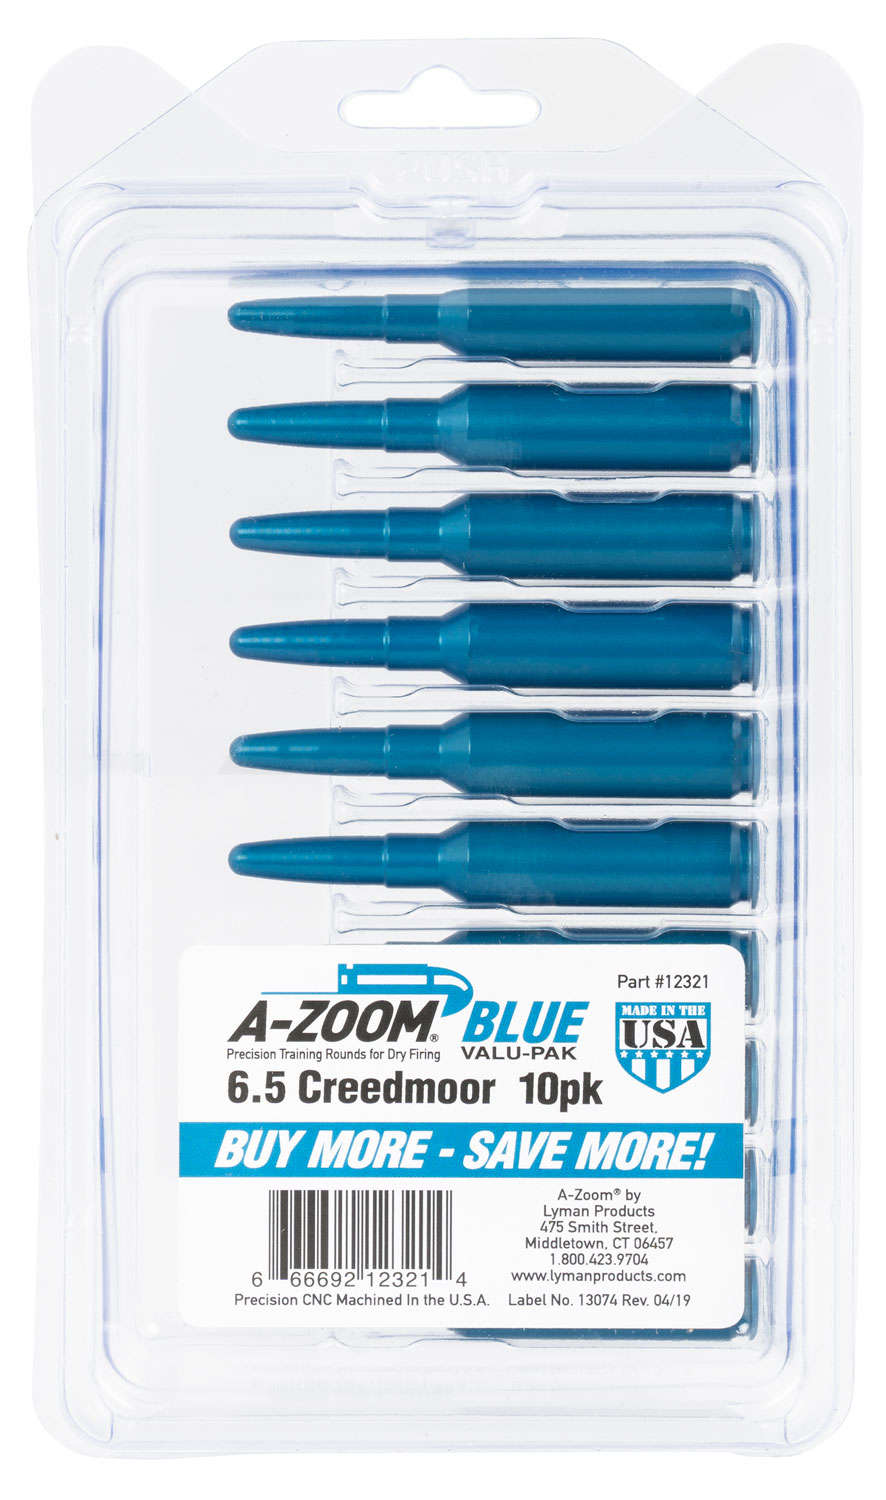 A-Zoom 6.5 Creedmoor Snap Cap Blue 10pk